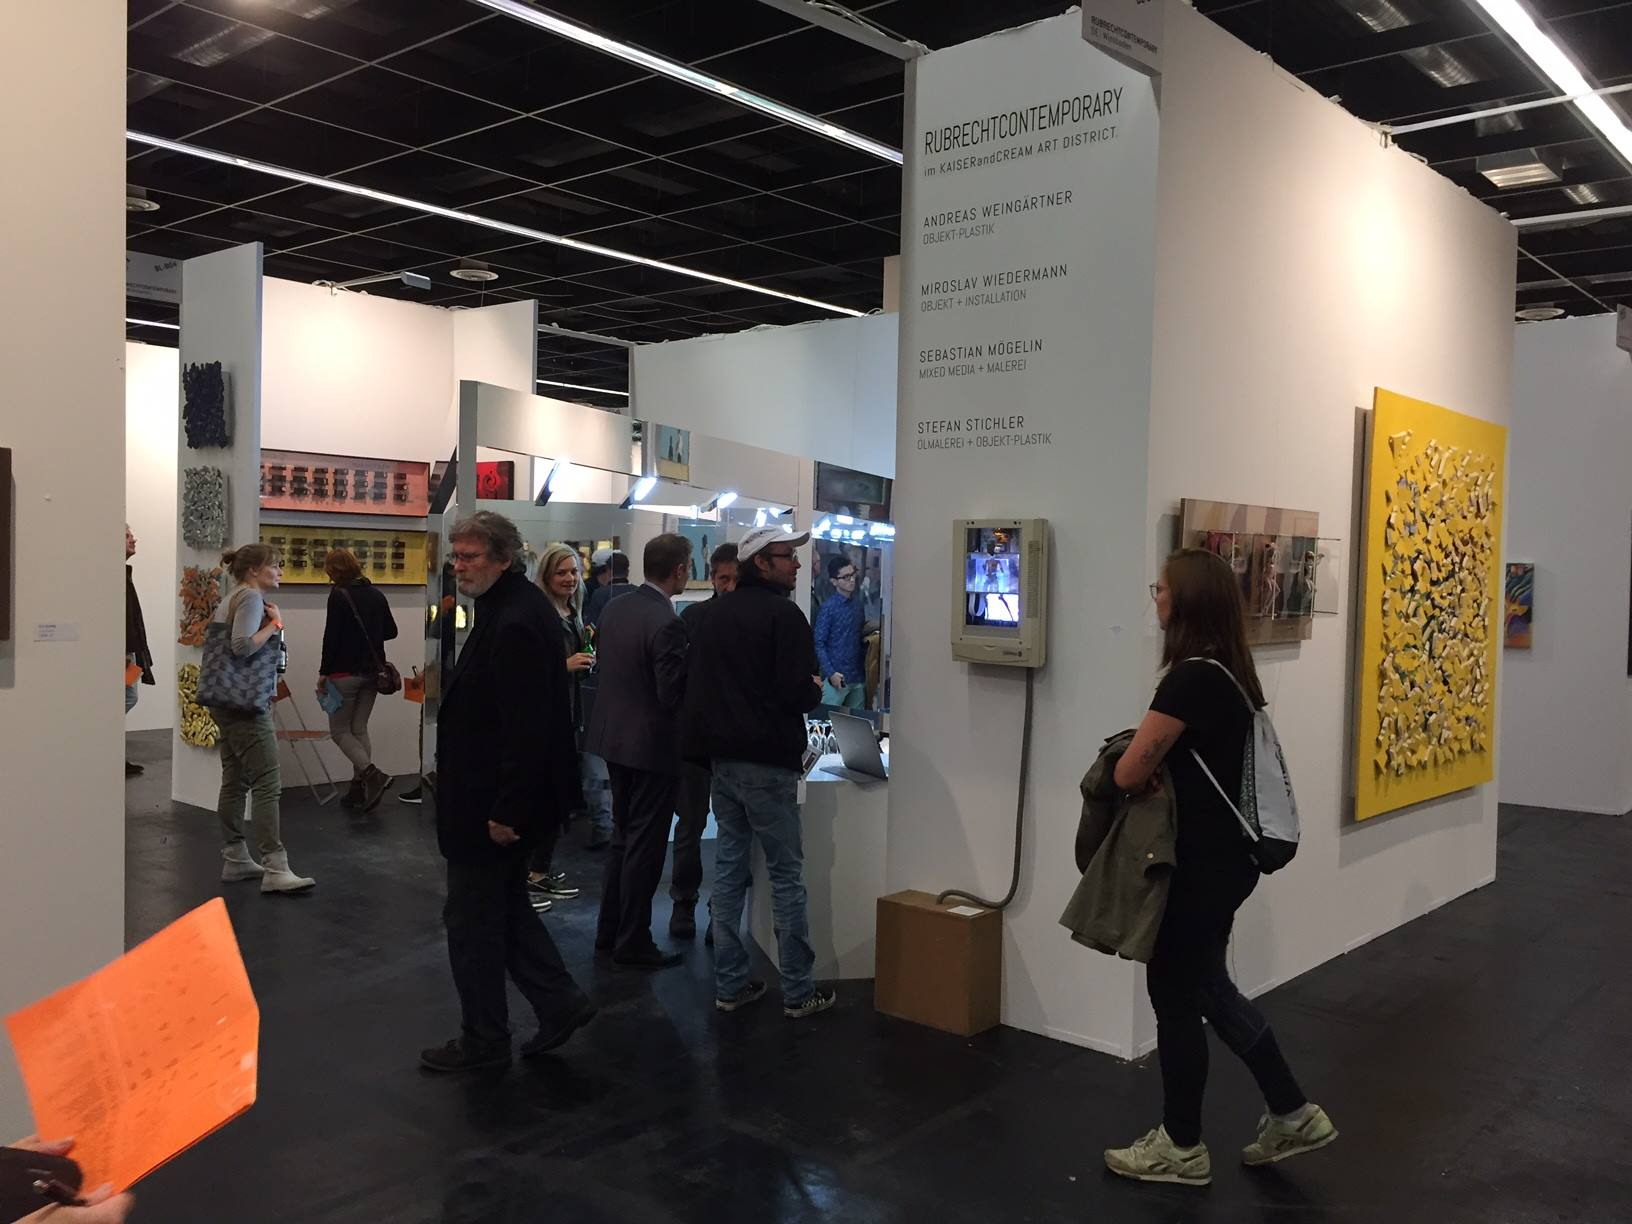 Impression Messe Art.Fair + Blooom 2016, Köln - Stand RUBRECHTCONTEMPORARY